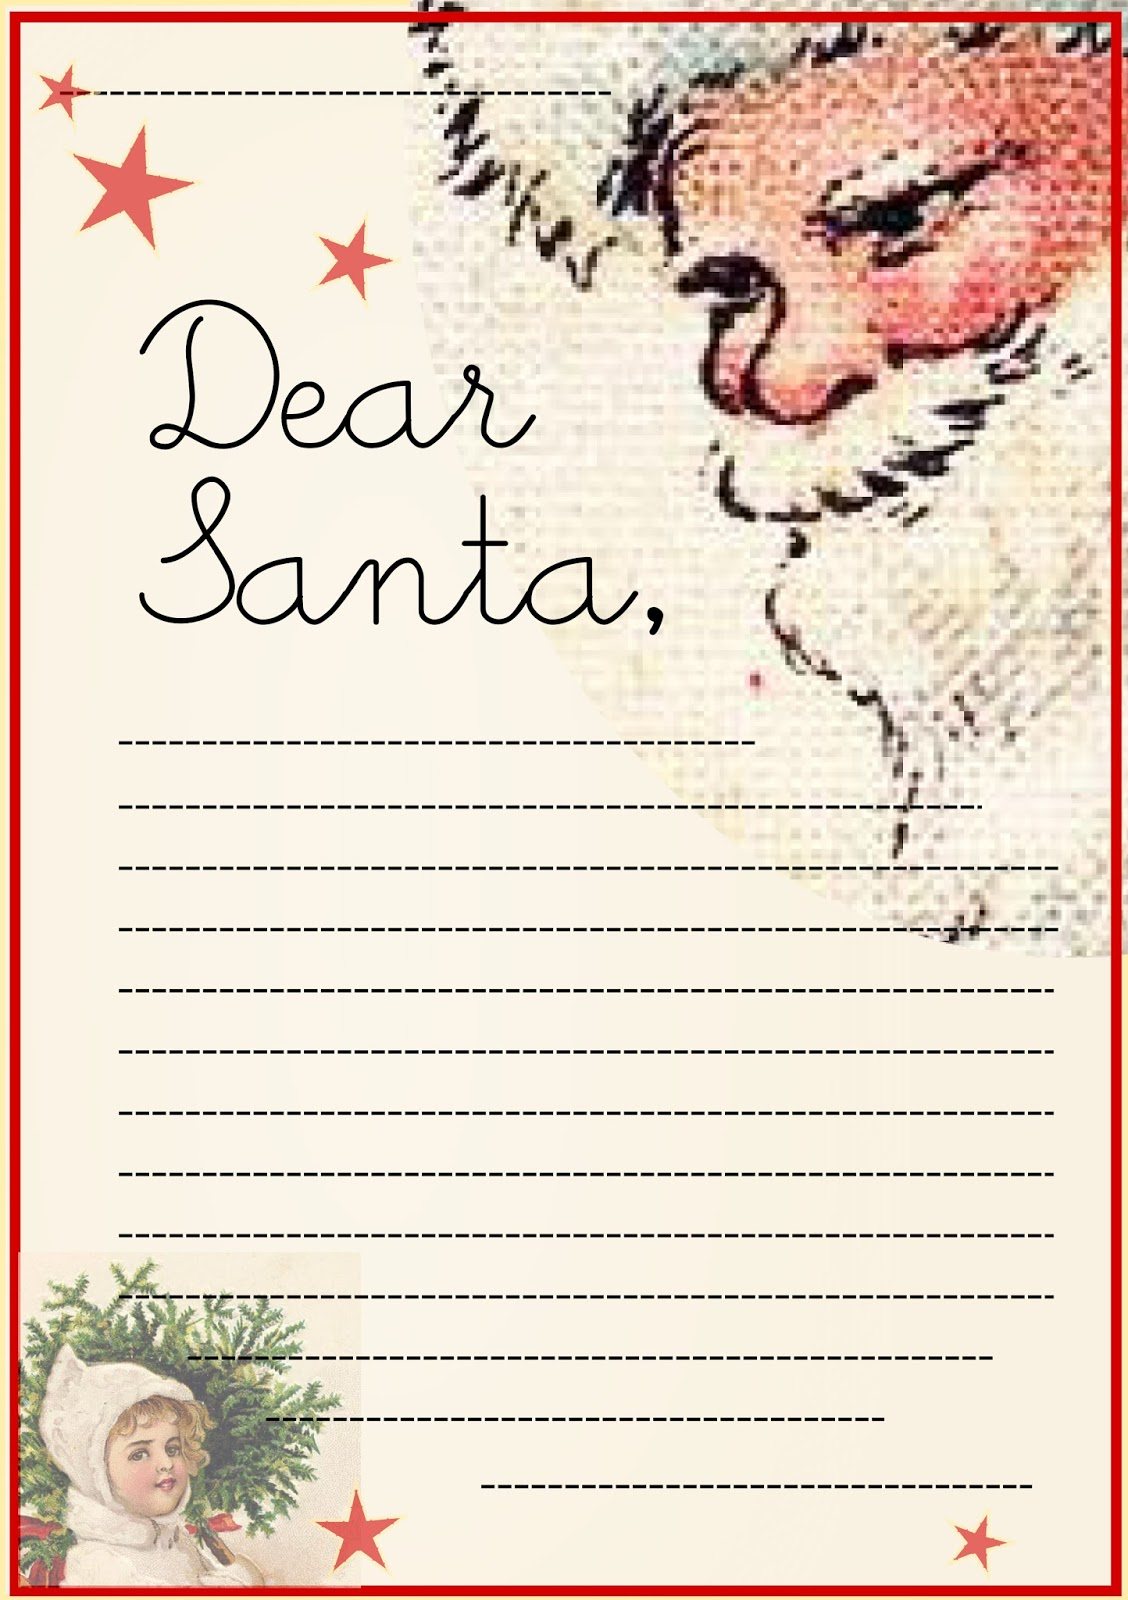 Free Printable Letter To Santa Claus Template For Children   Wunschliste  Für Kinder   Ausdruckbar  Free Printable Christmas Wish List Template